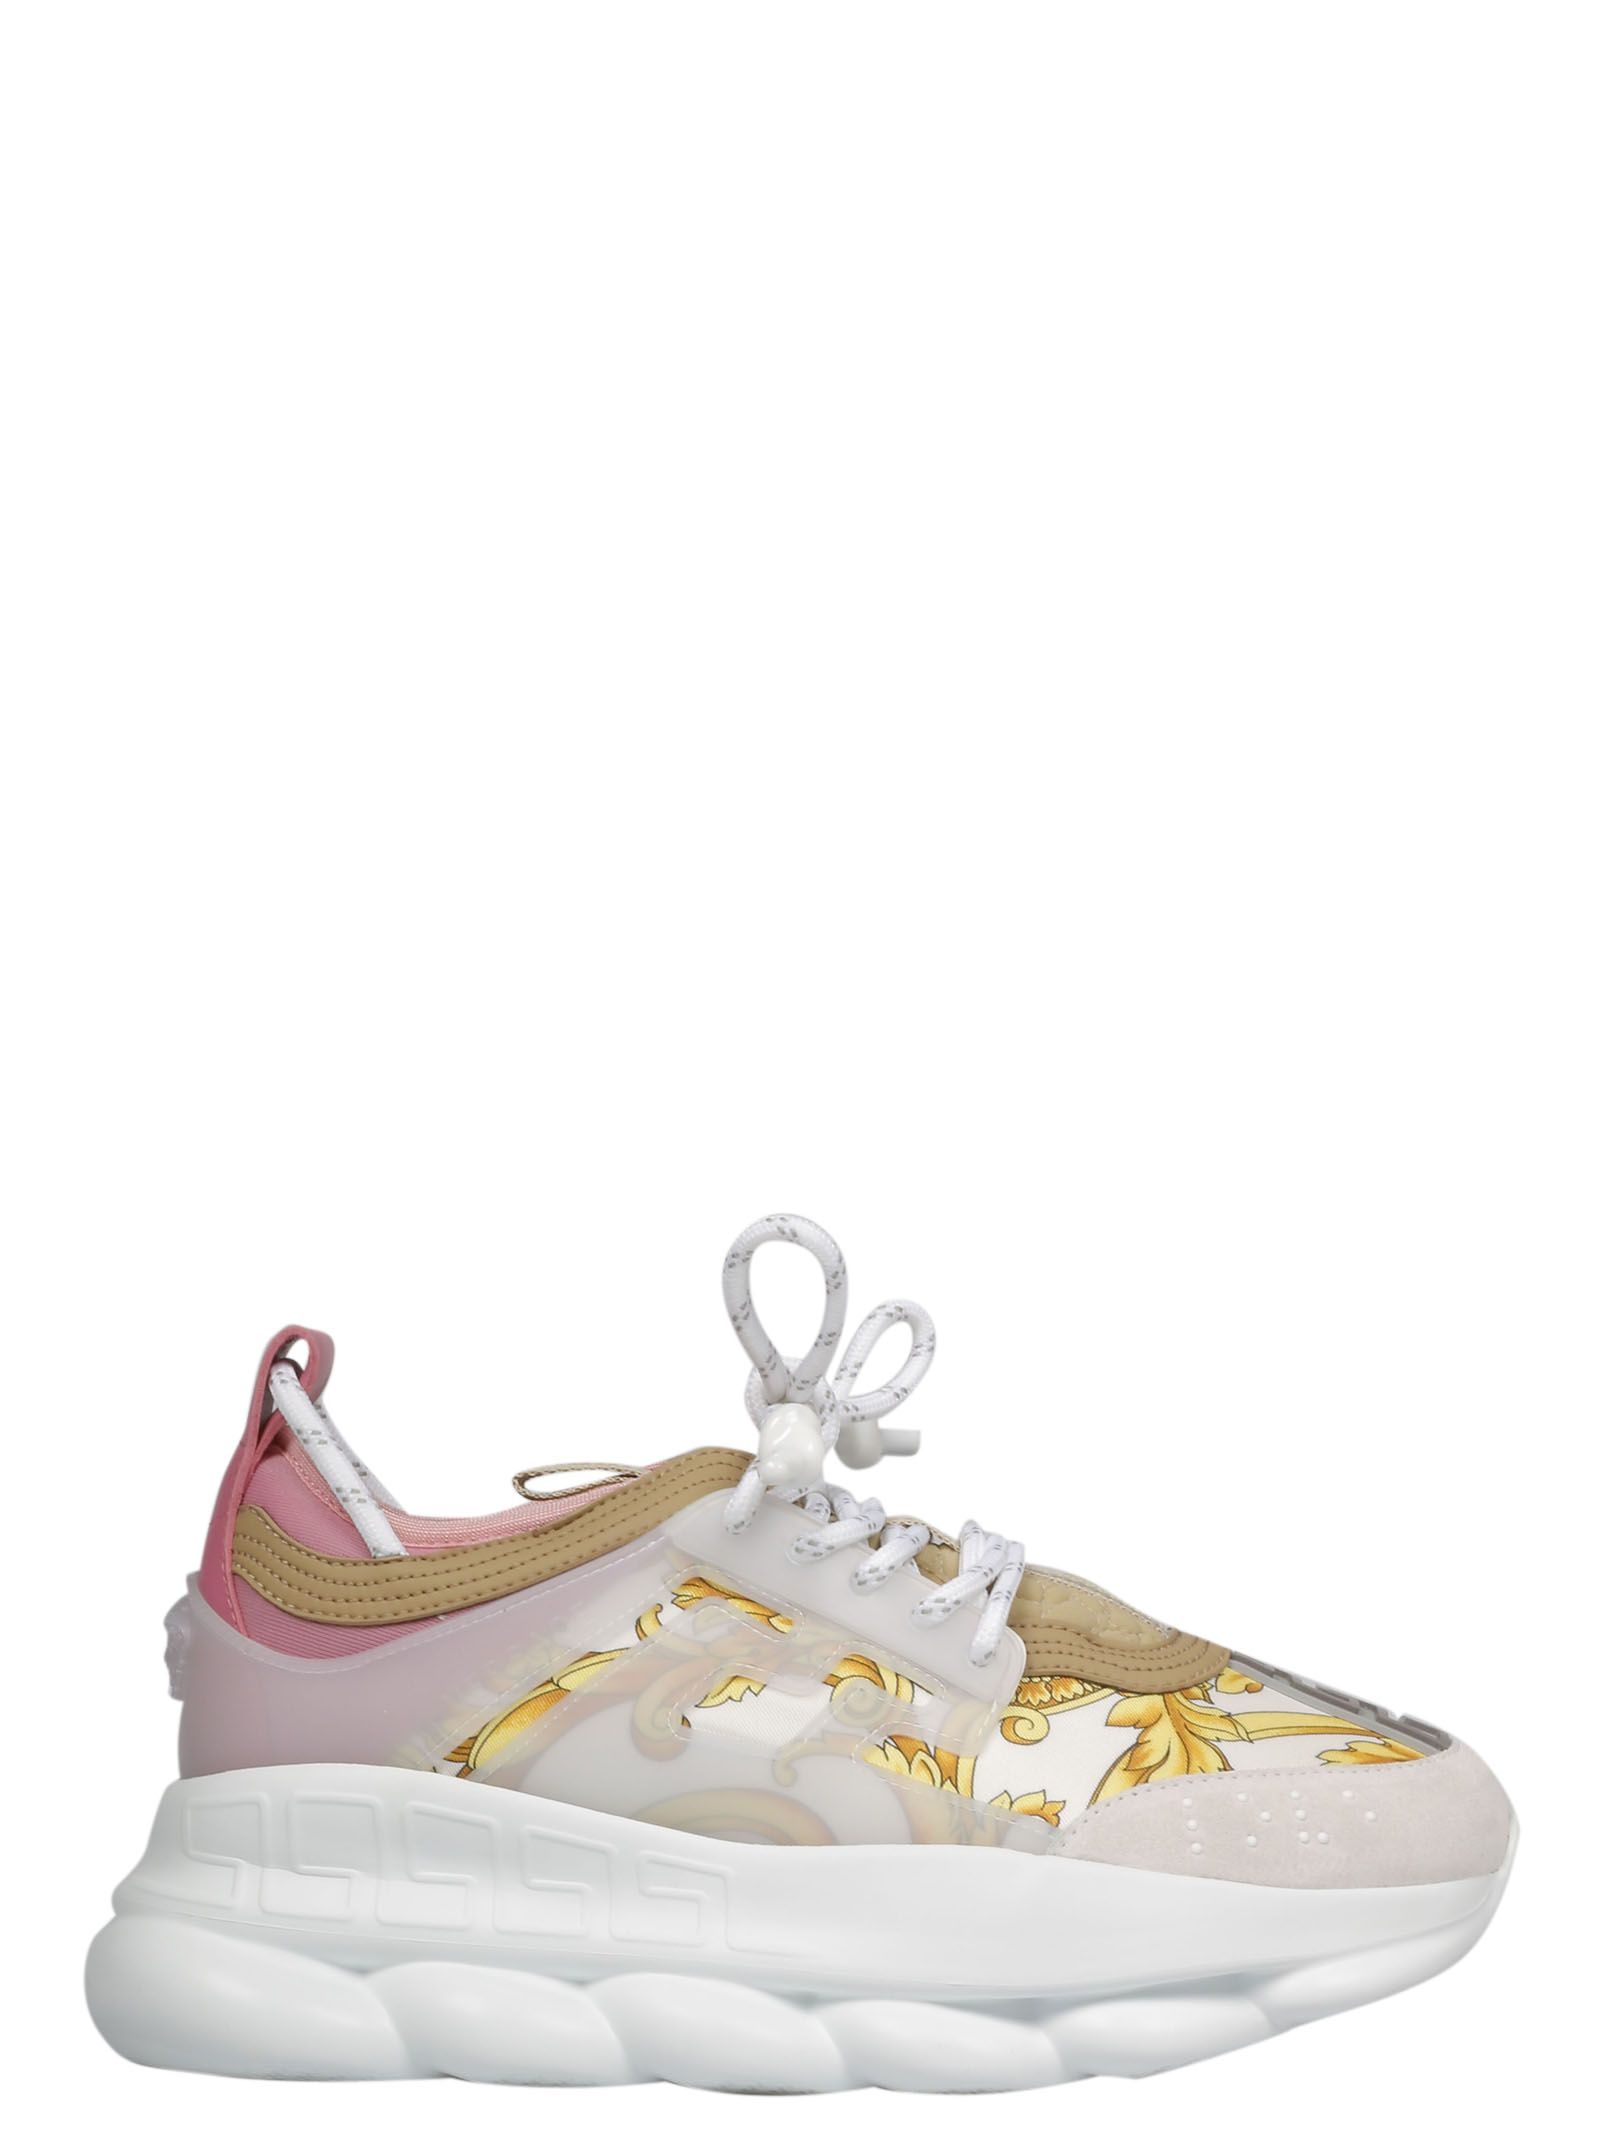 edc059f5f Versace Chain Reaction Printed Canvas, Neoprene And Suede Platform Sneakers  In White